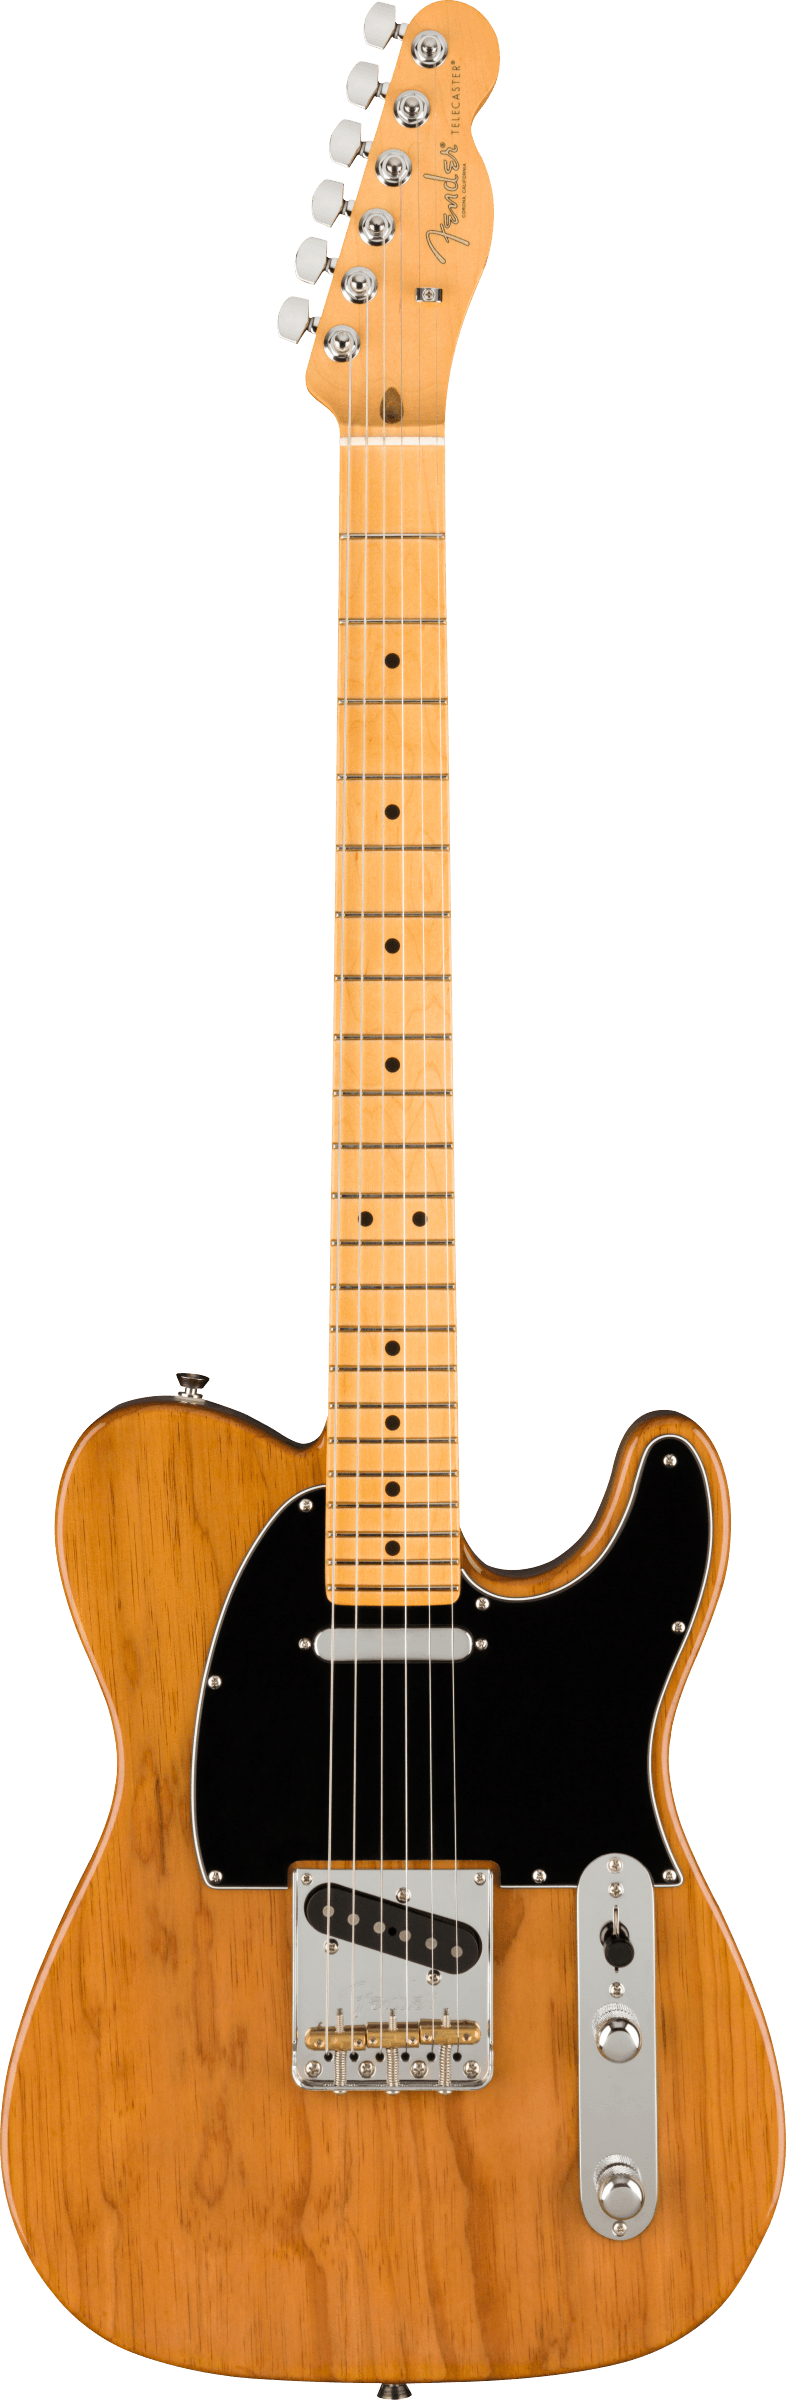 Fender American Professional II Telecaster®, Maple Fingerboard, Roasted Pine